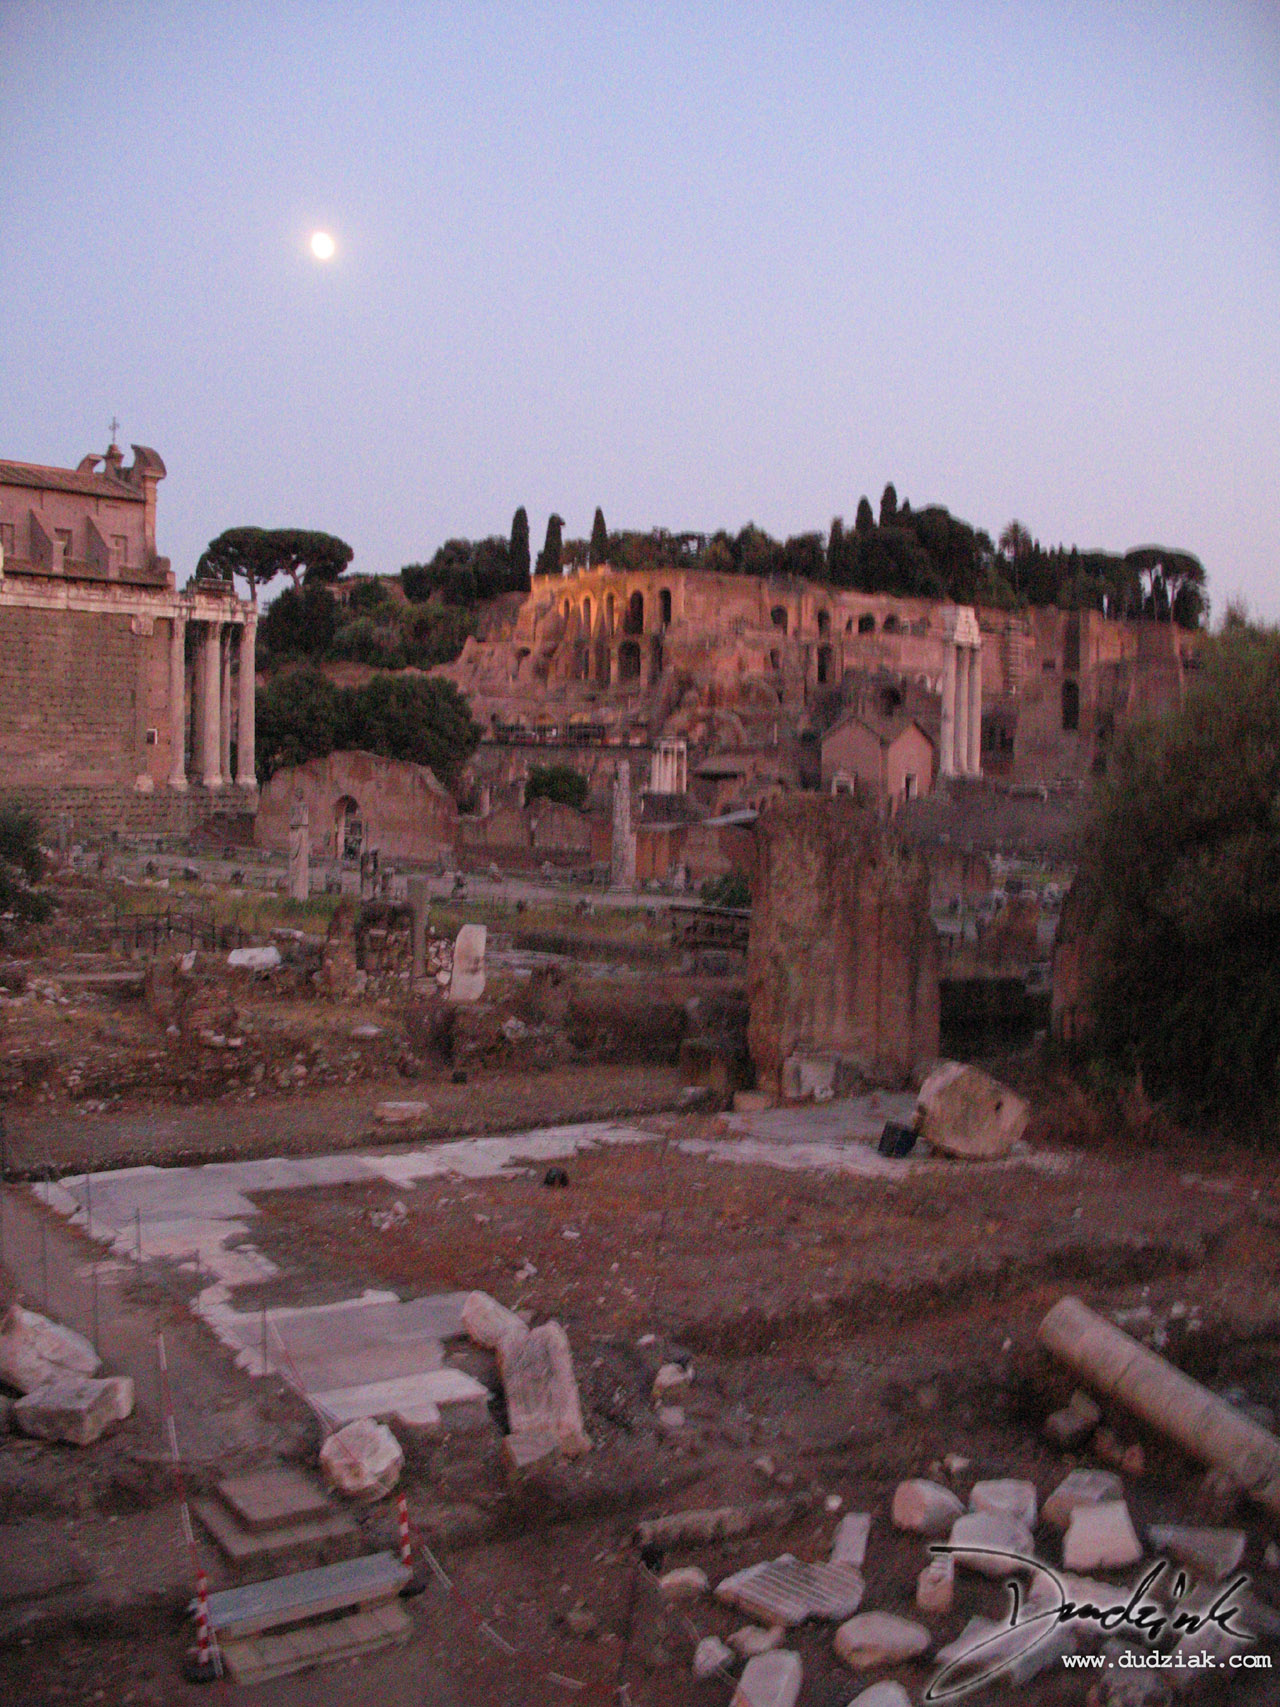 dusk,  rome,  italy,  roman forum,  moonlight